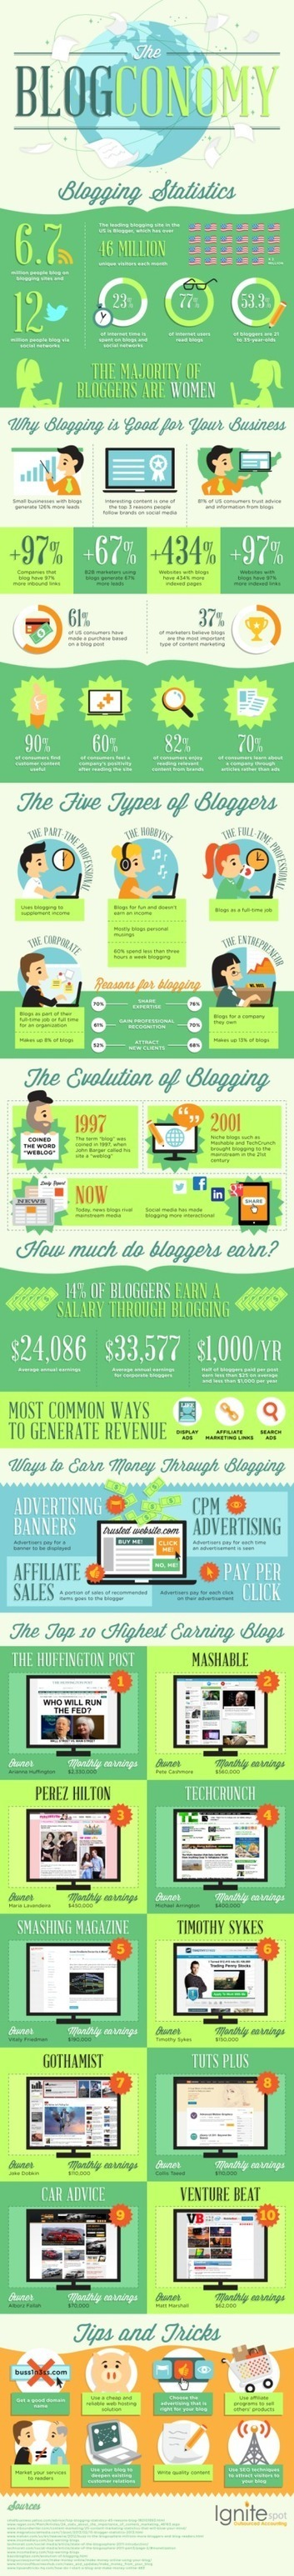 Why Every Business Needs a Blog [Infographic] | Social Marketing Revolution | Scoop.it